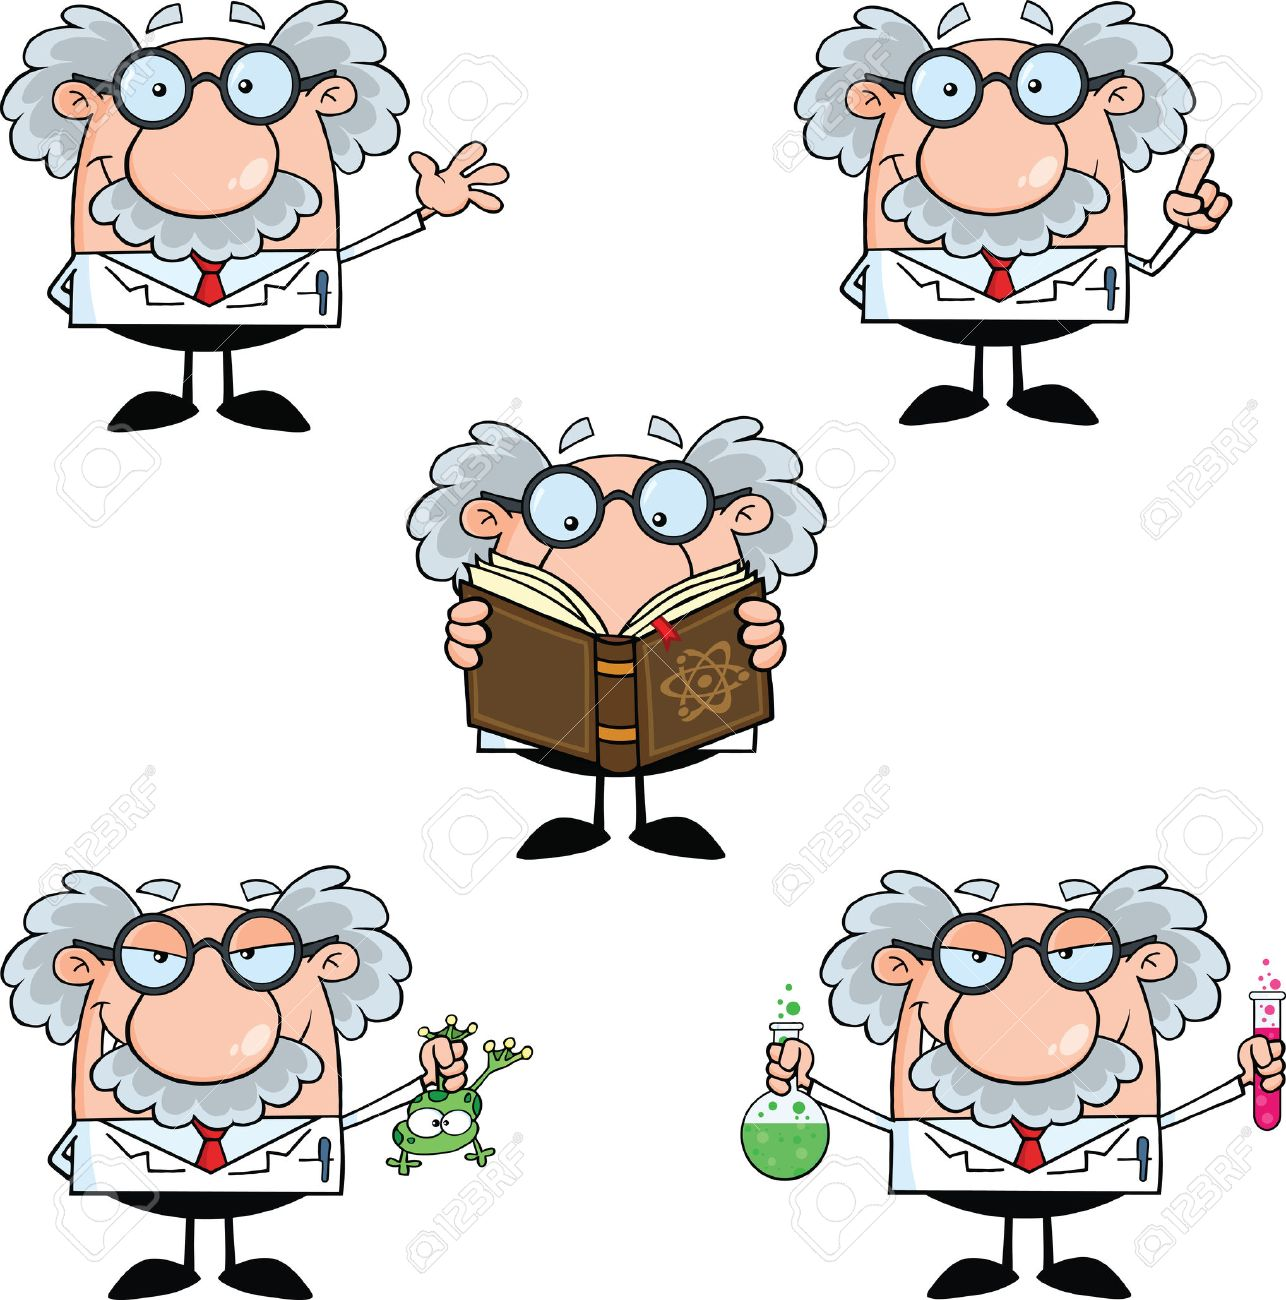 Funny Scientist Or Professor Different Poses 2 Collection Set - 26820233